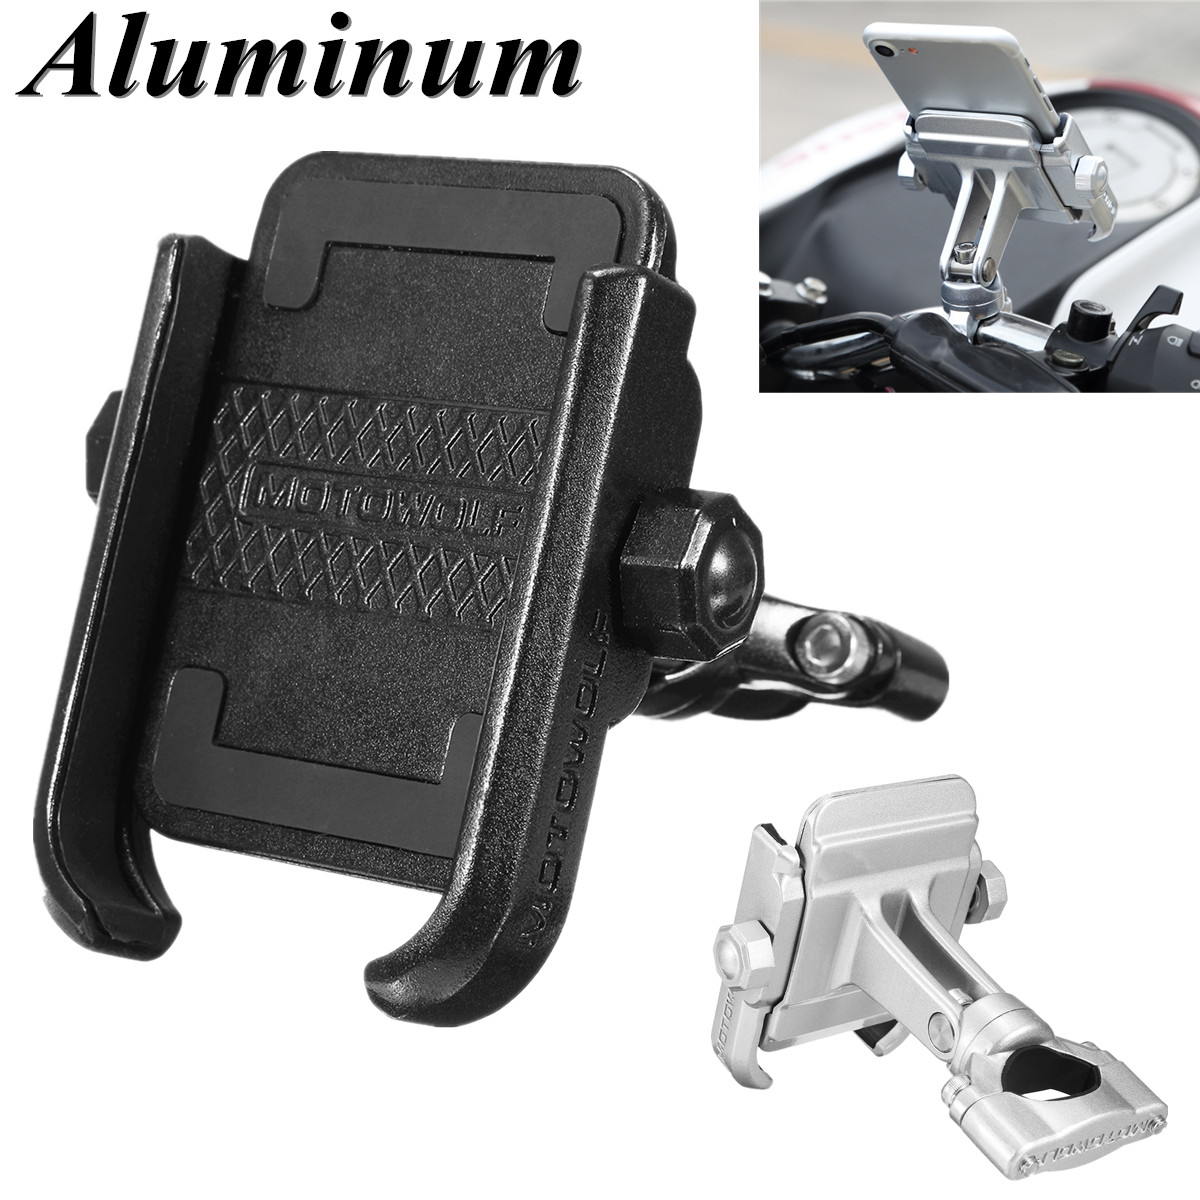 Aluminum Bike Motorcycle Phone Handlebar Mount Holder 360 Degree Rotating Universal Bicycle Phone Holder Clip for Cell PhoneAluminum Bike Motorcycle Phone Handlebar Mount Holder 360 Degree Rotating Universal Bicycle Phone Holder Clip for Cell Phone